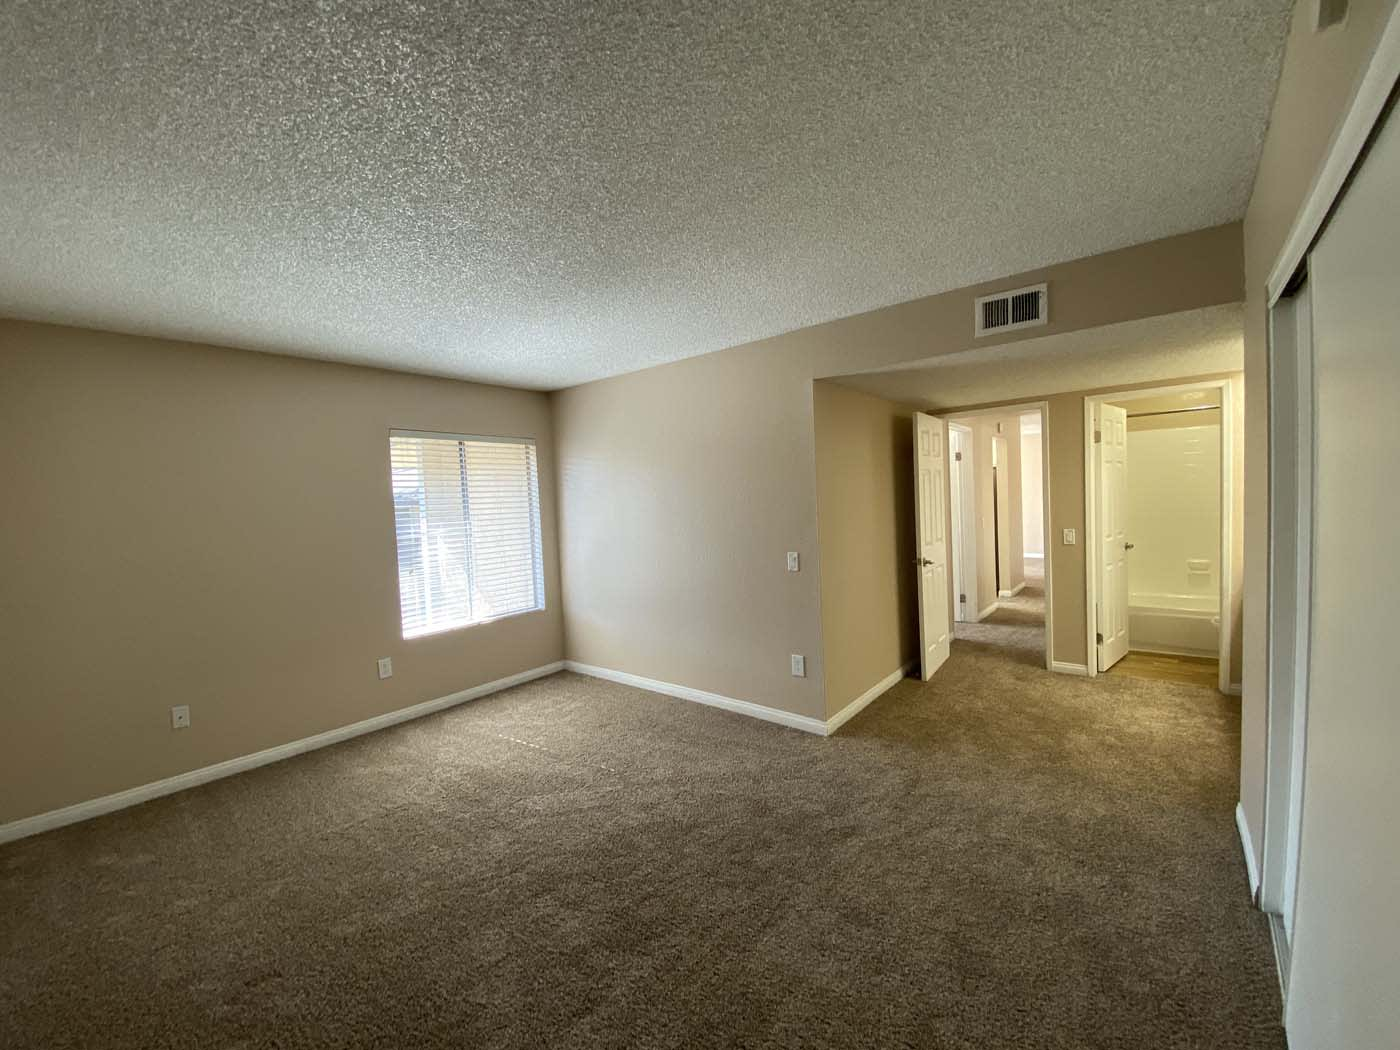 Bathroom Attach With Living Room at Stoneridge Apartment, Upland, CA, 91786